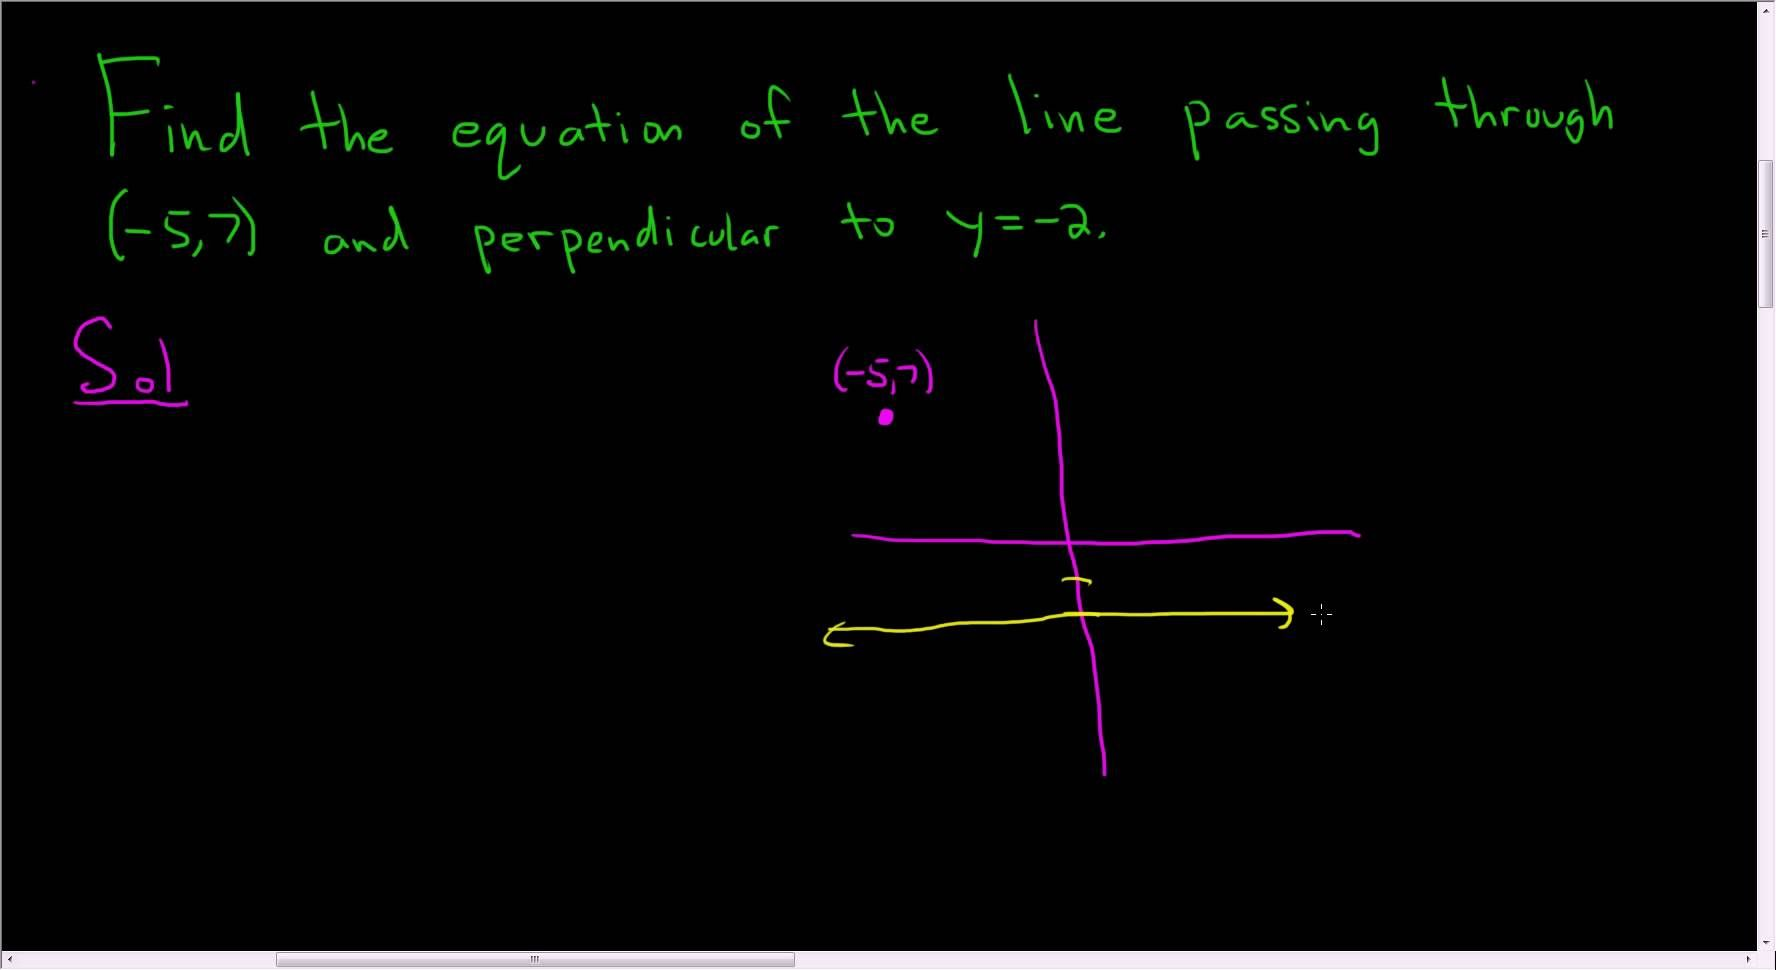 Equation Of Line Passing Through 5 7 And Perpendicular